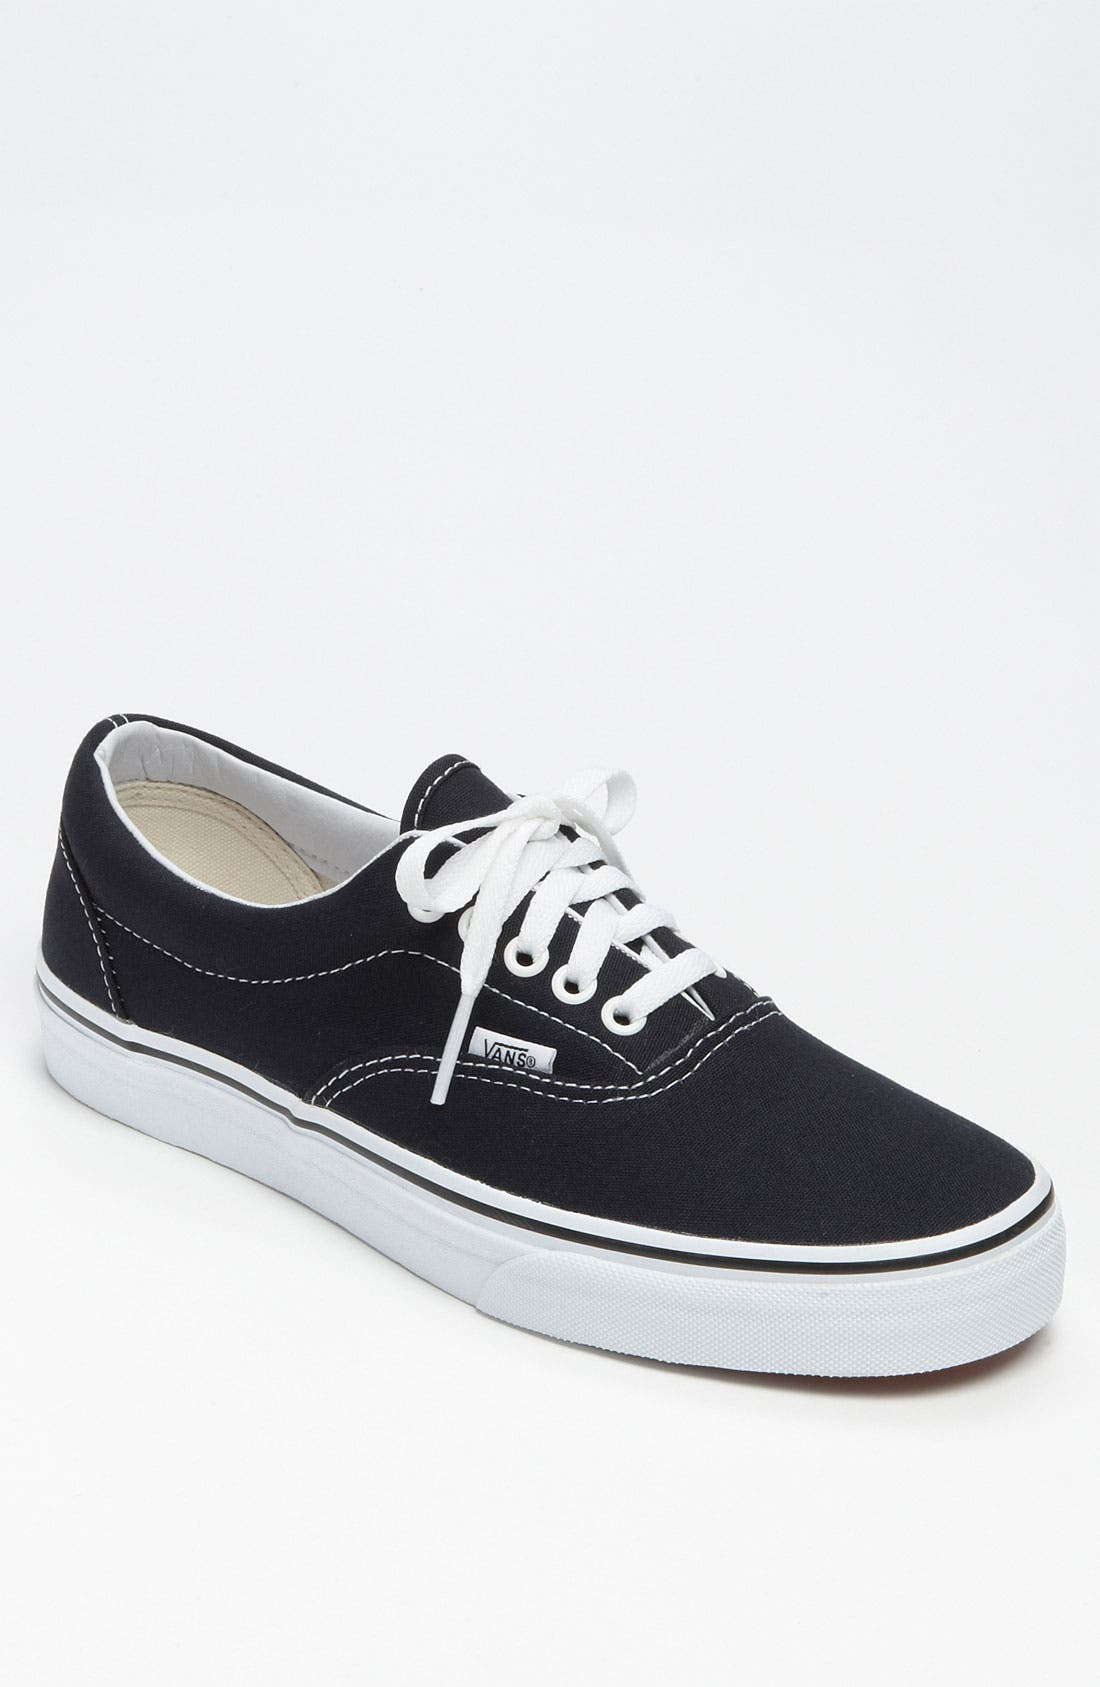 Alternate Image 1 Selected - Vans 'Era' Sneaker (Men)